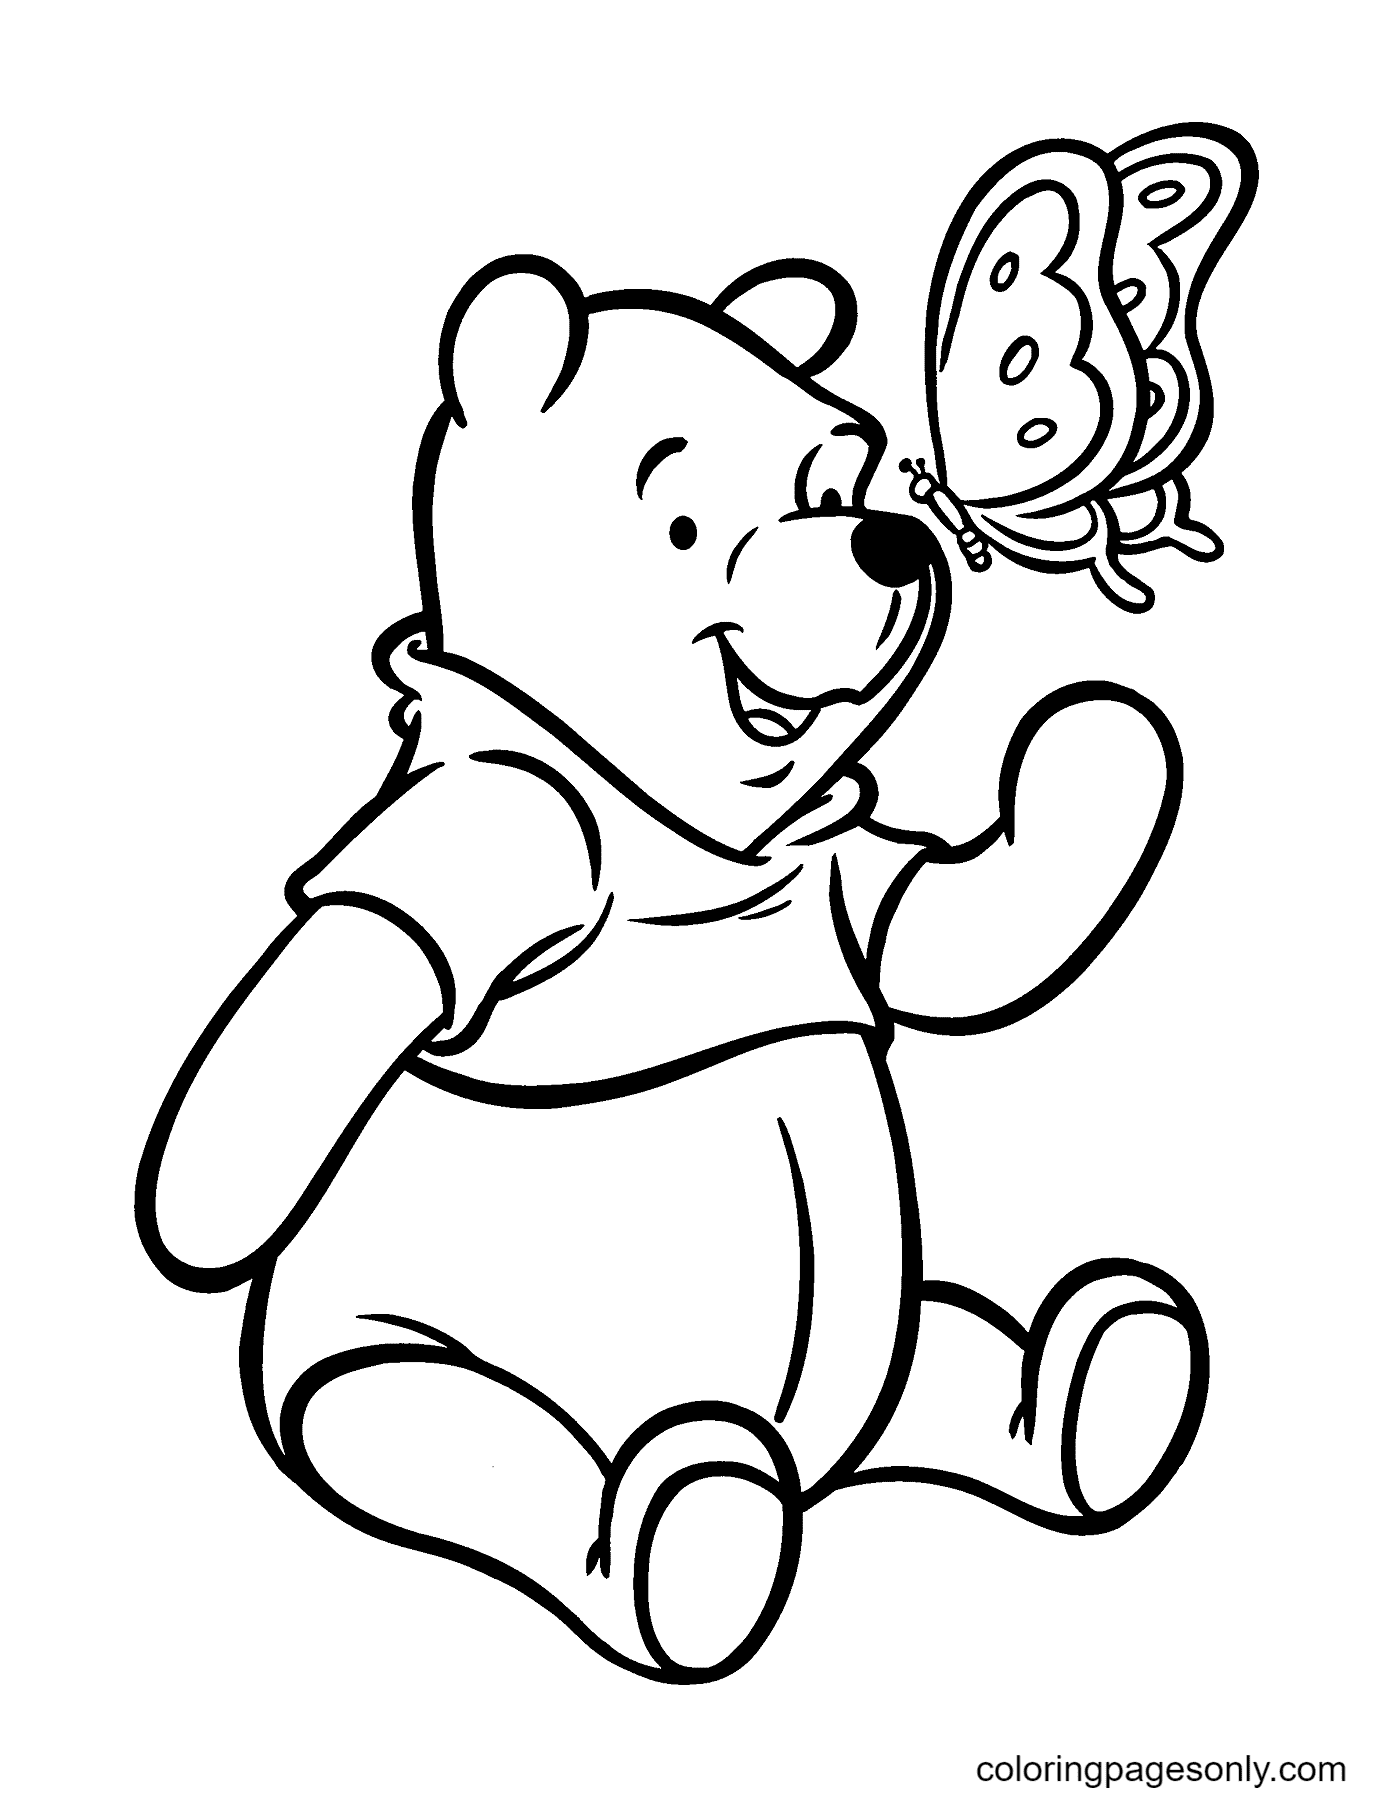 Winnie Playing with Butterfly Coloring Page